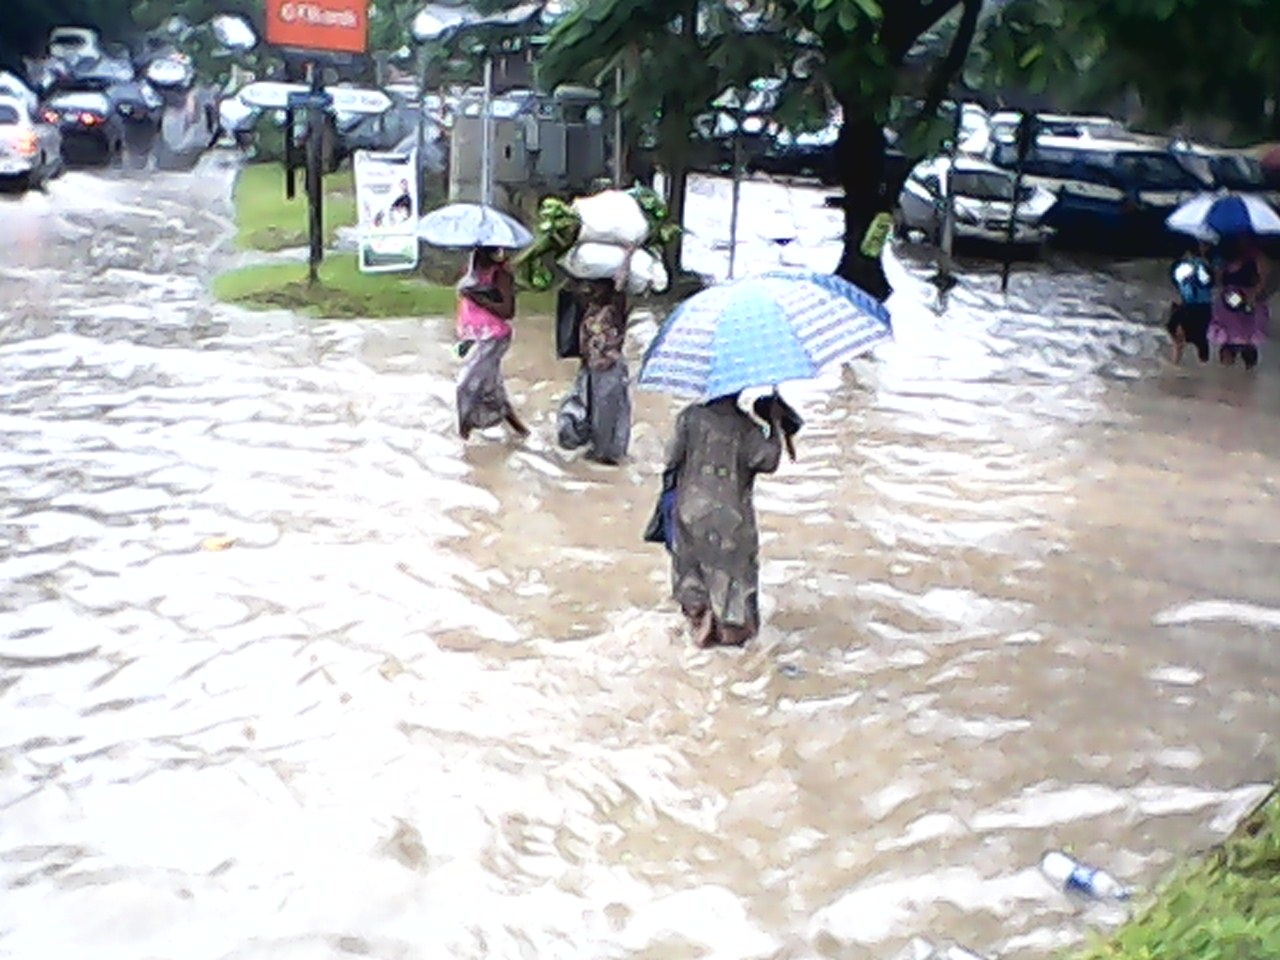 Pedestrians brazing the flood waters